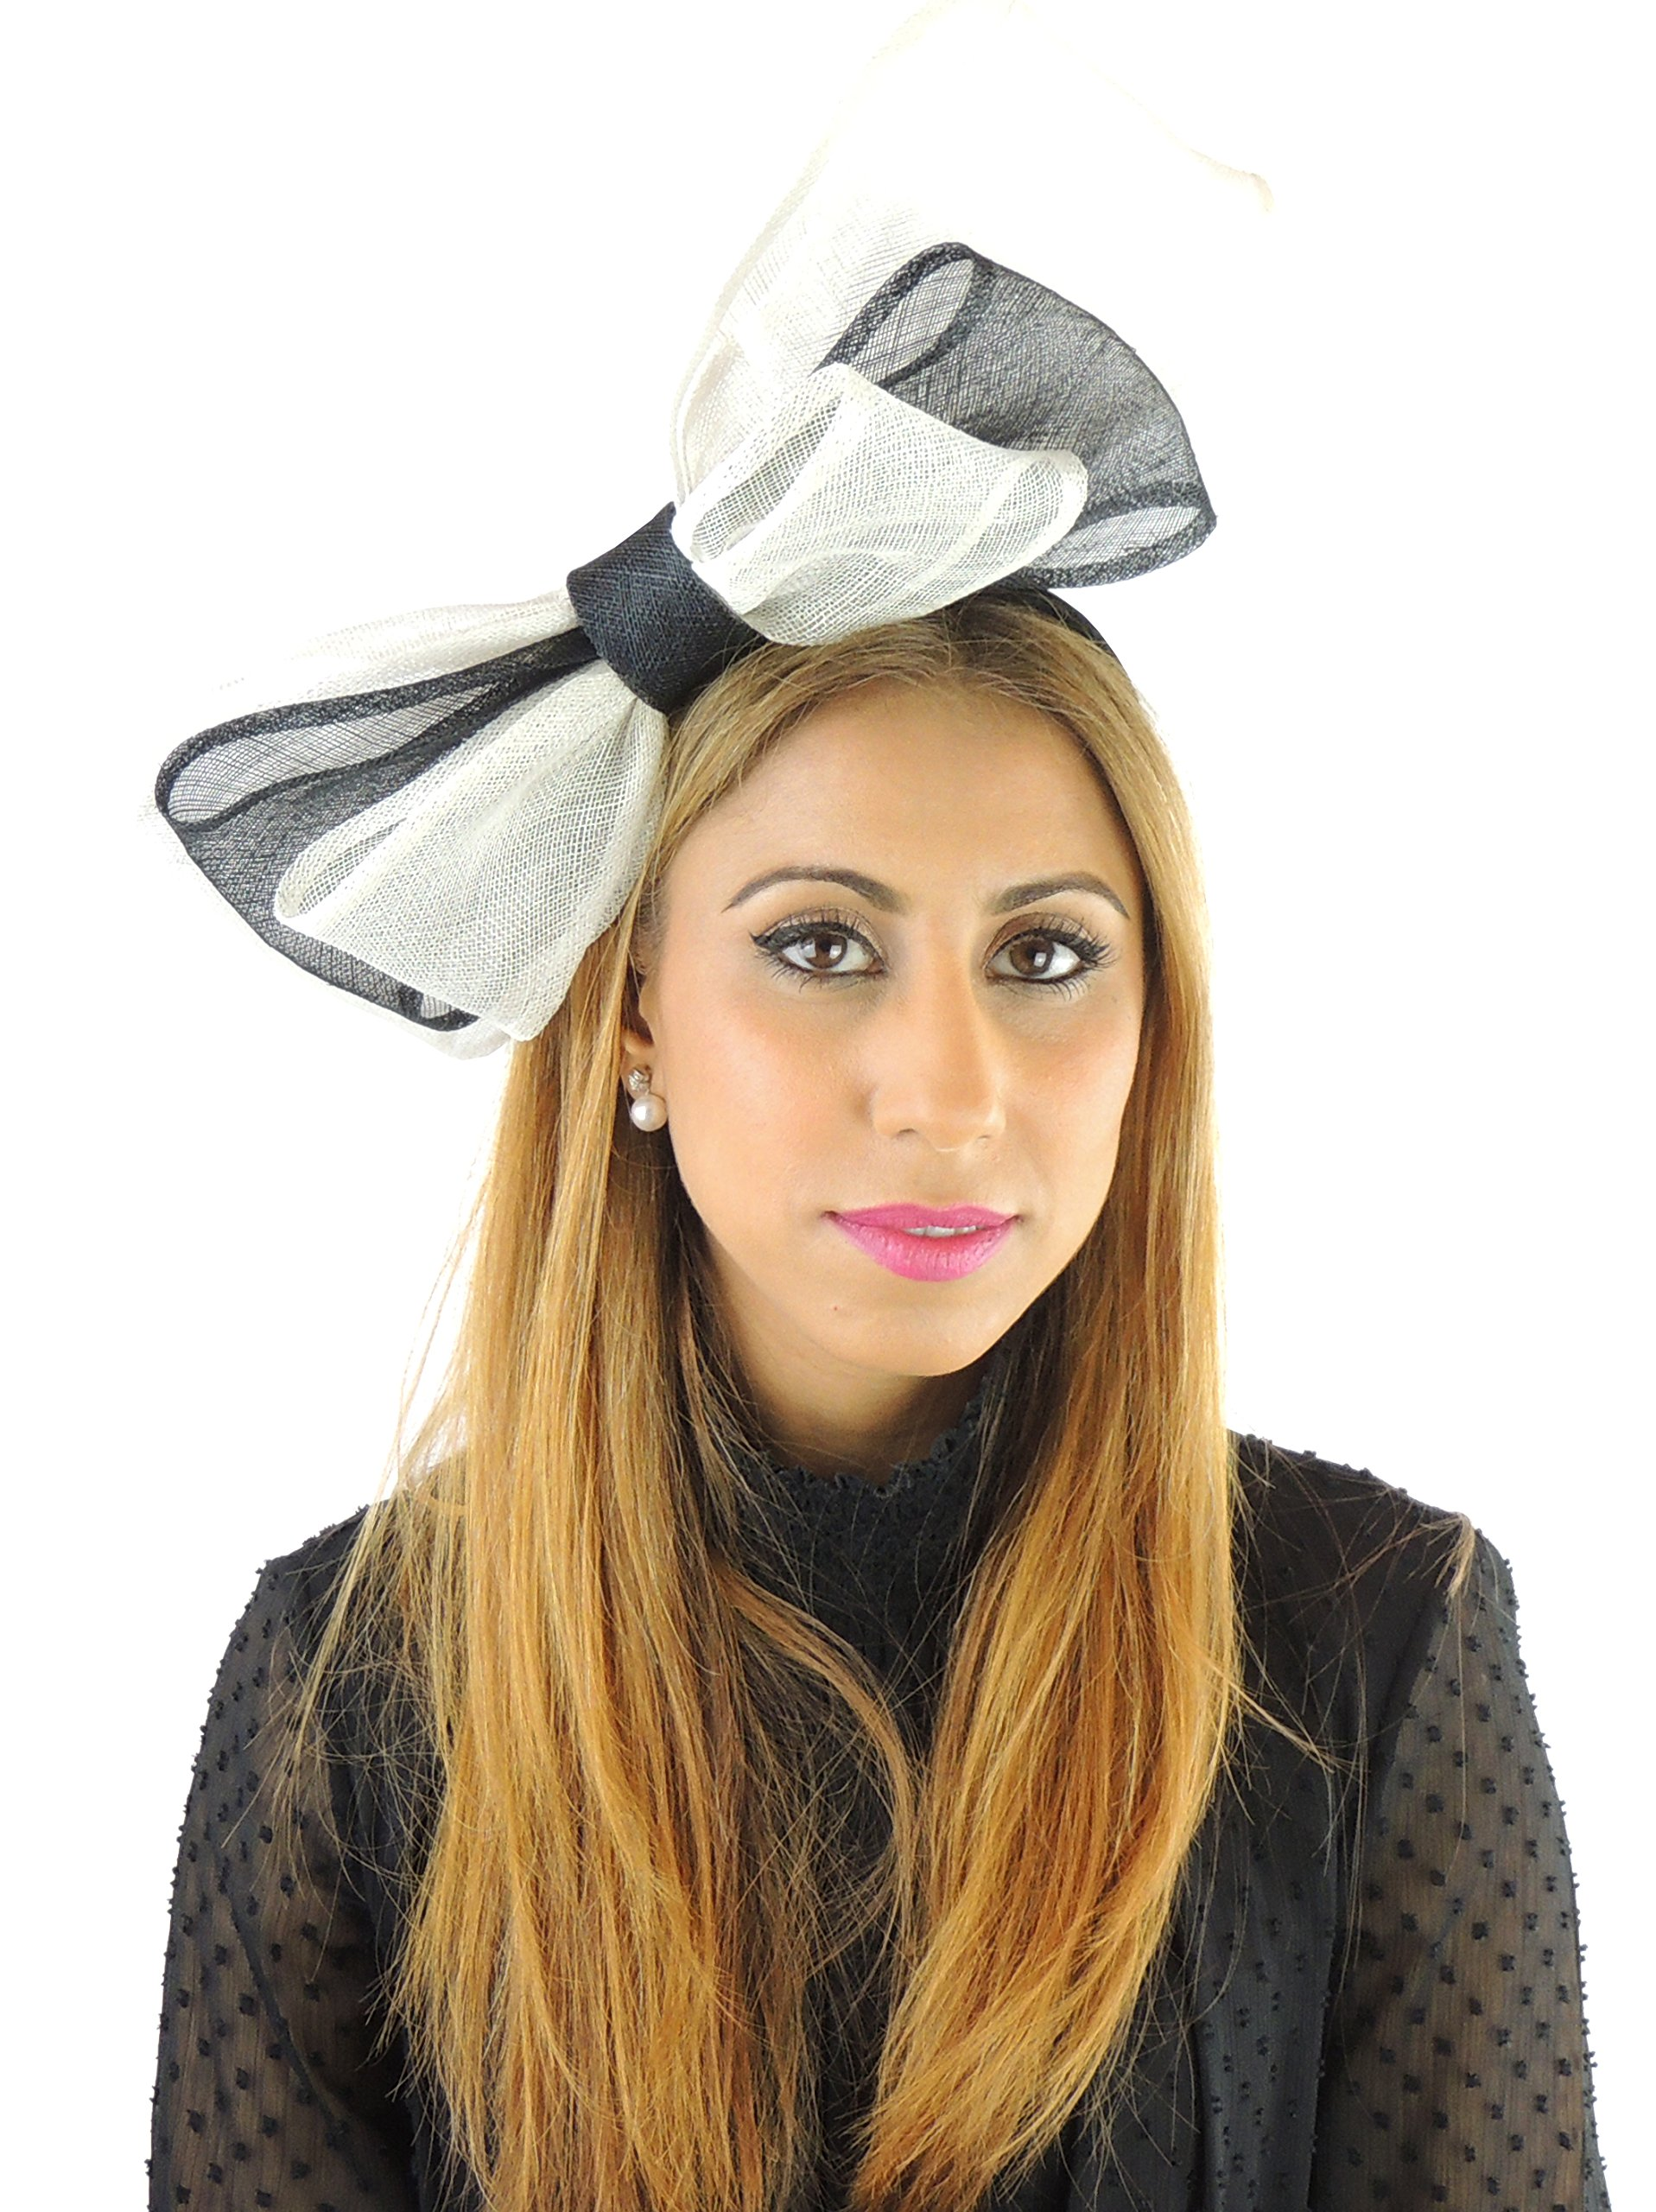 Hats By Cressida Ladies Sinamay Bow Ascot Fascinator Hat With Headband Black Ivory by Hats By Cressida